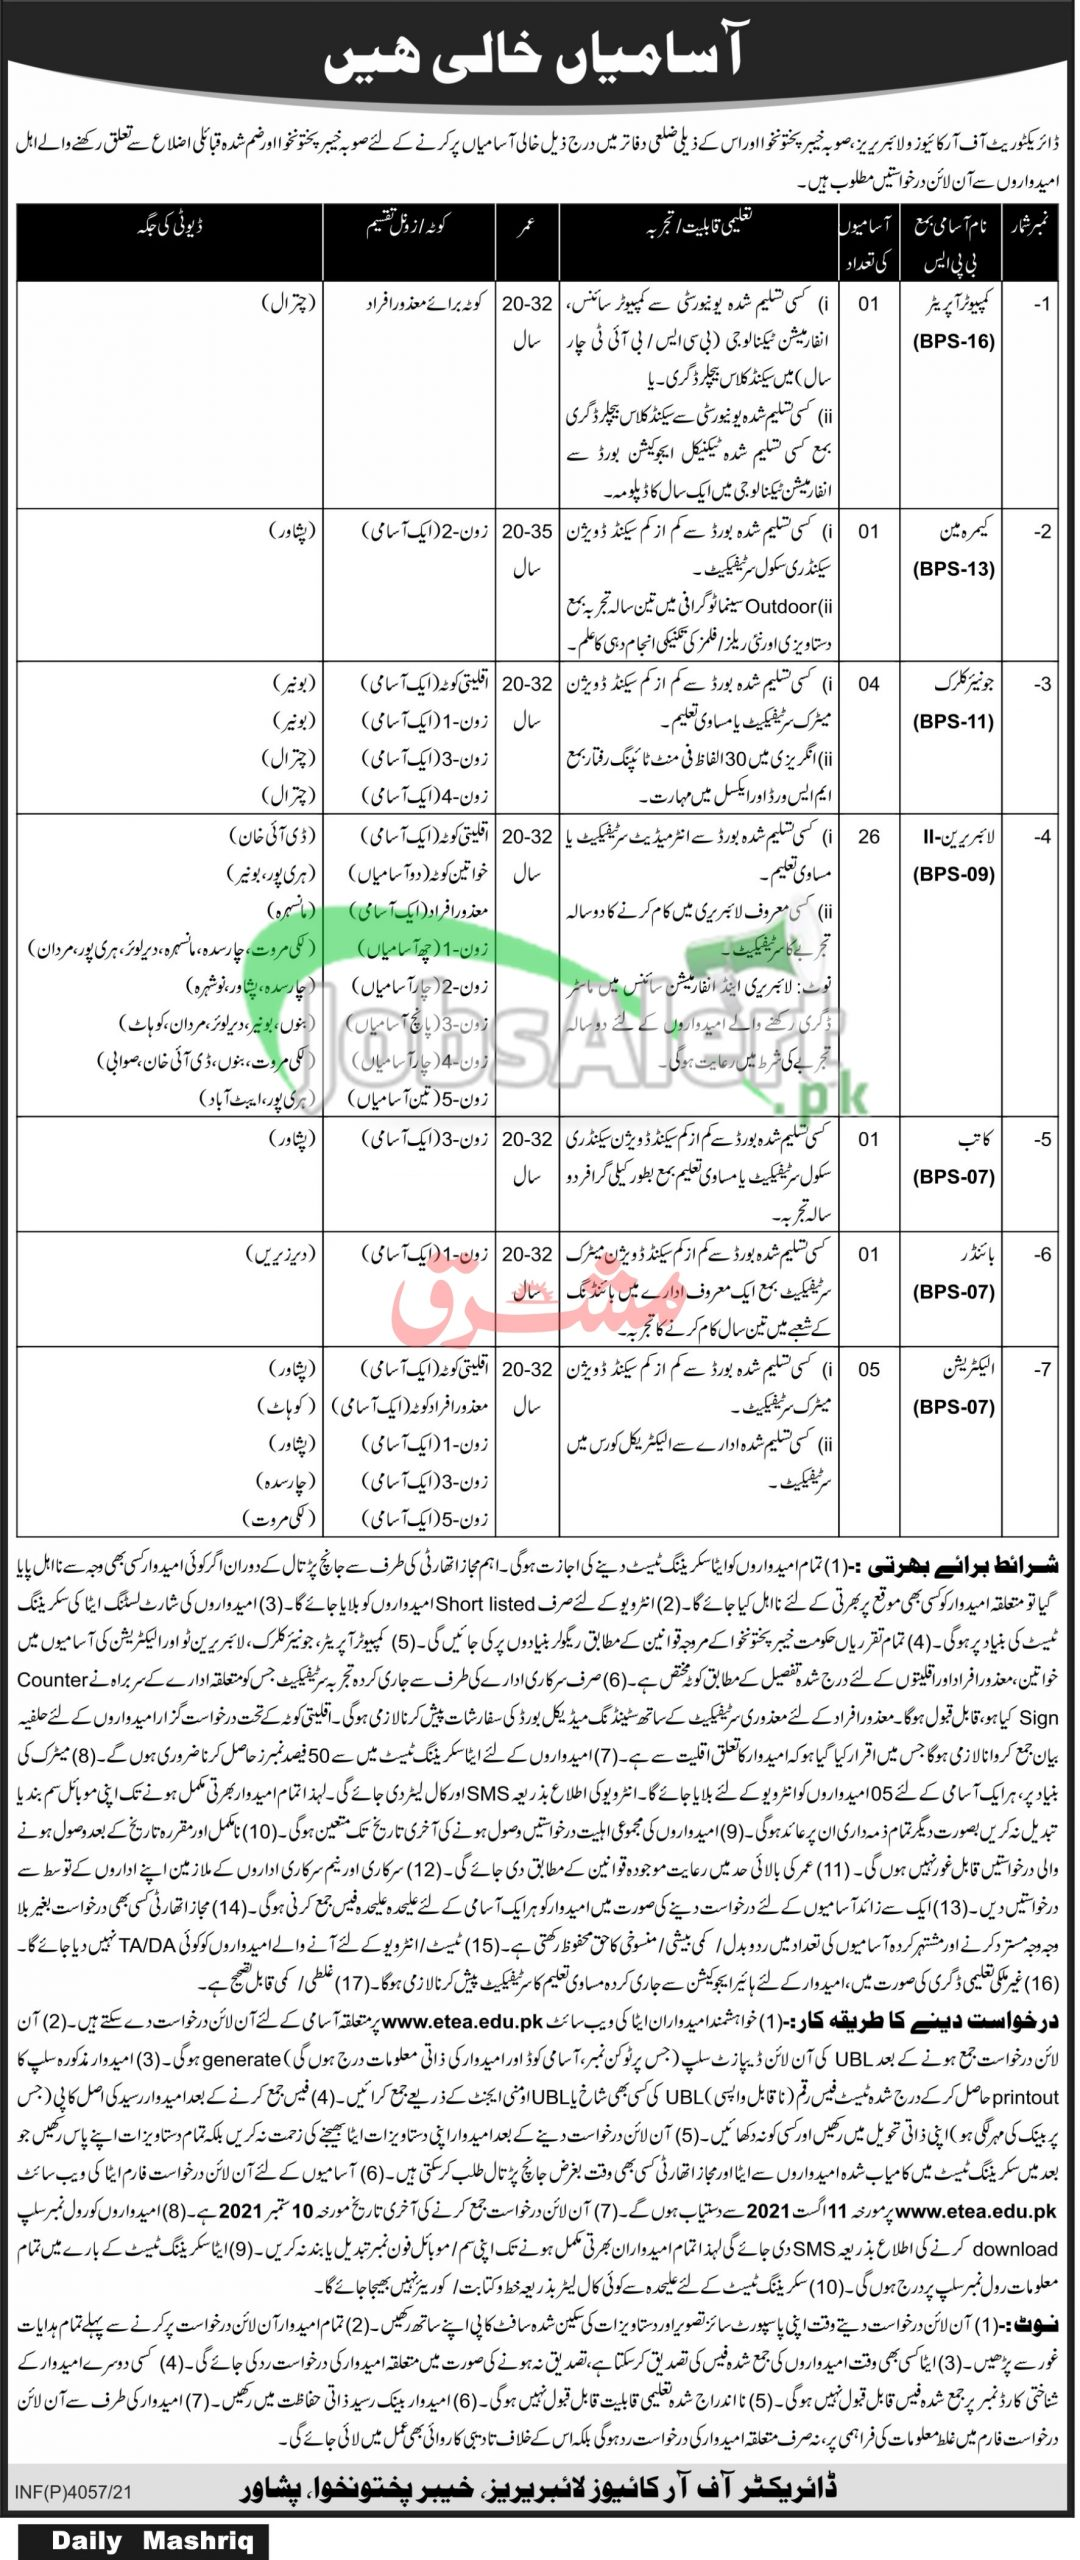 Directorate of Archives Libraries Jobs ETEA Test Roll No Slip